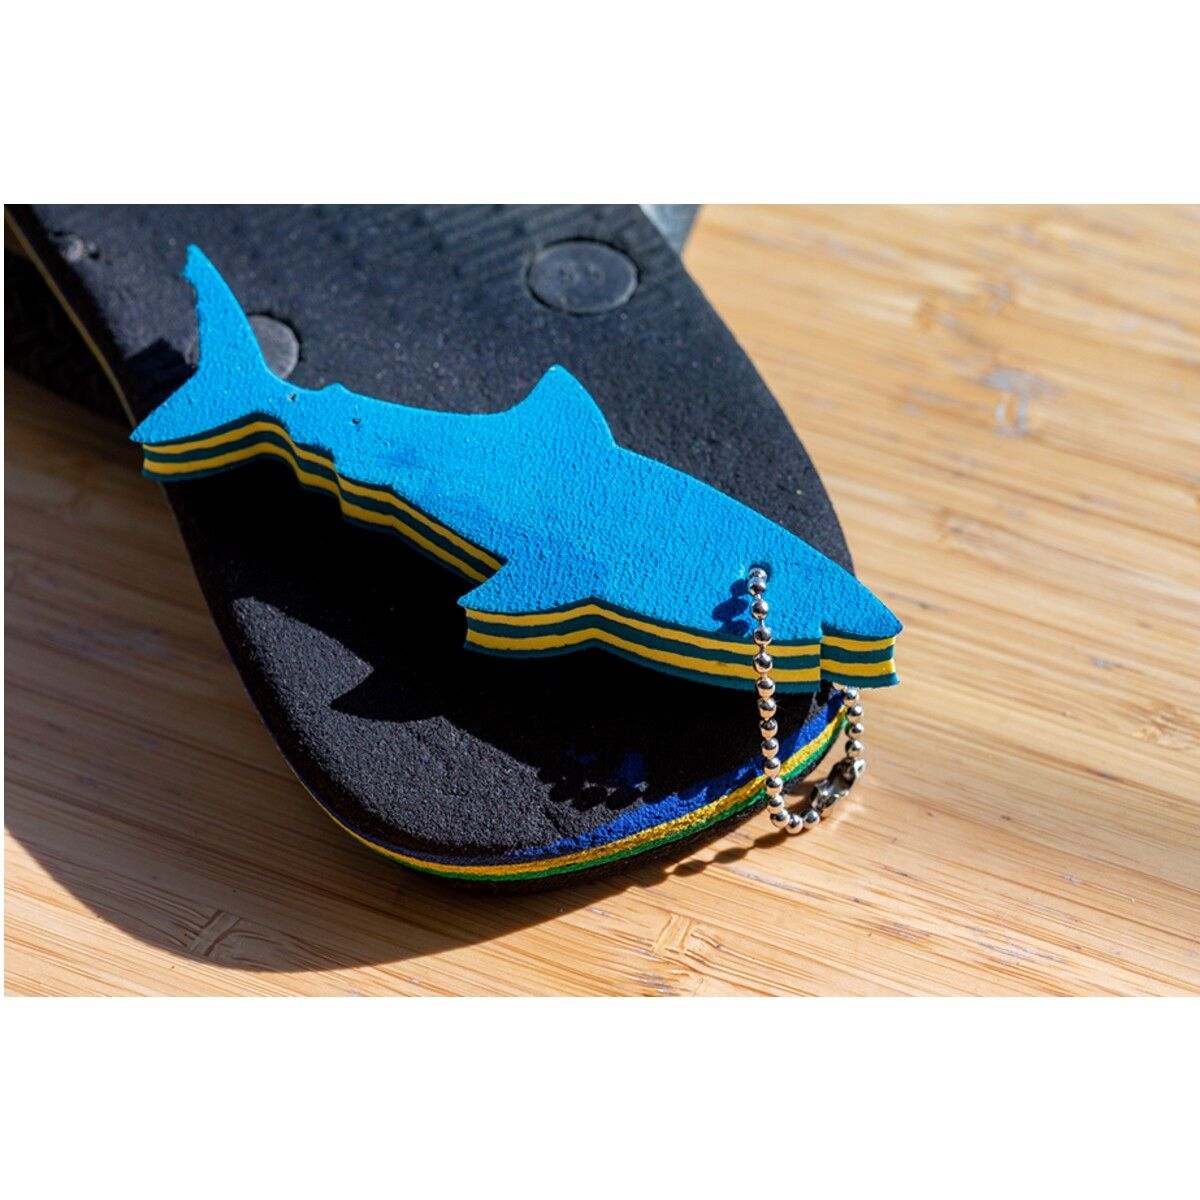 Recycled Flip-flop Floating Keyrings